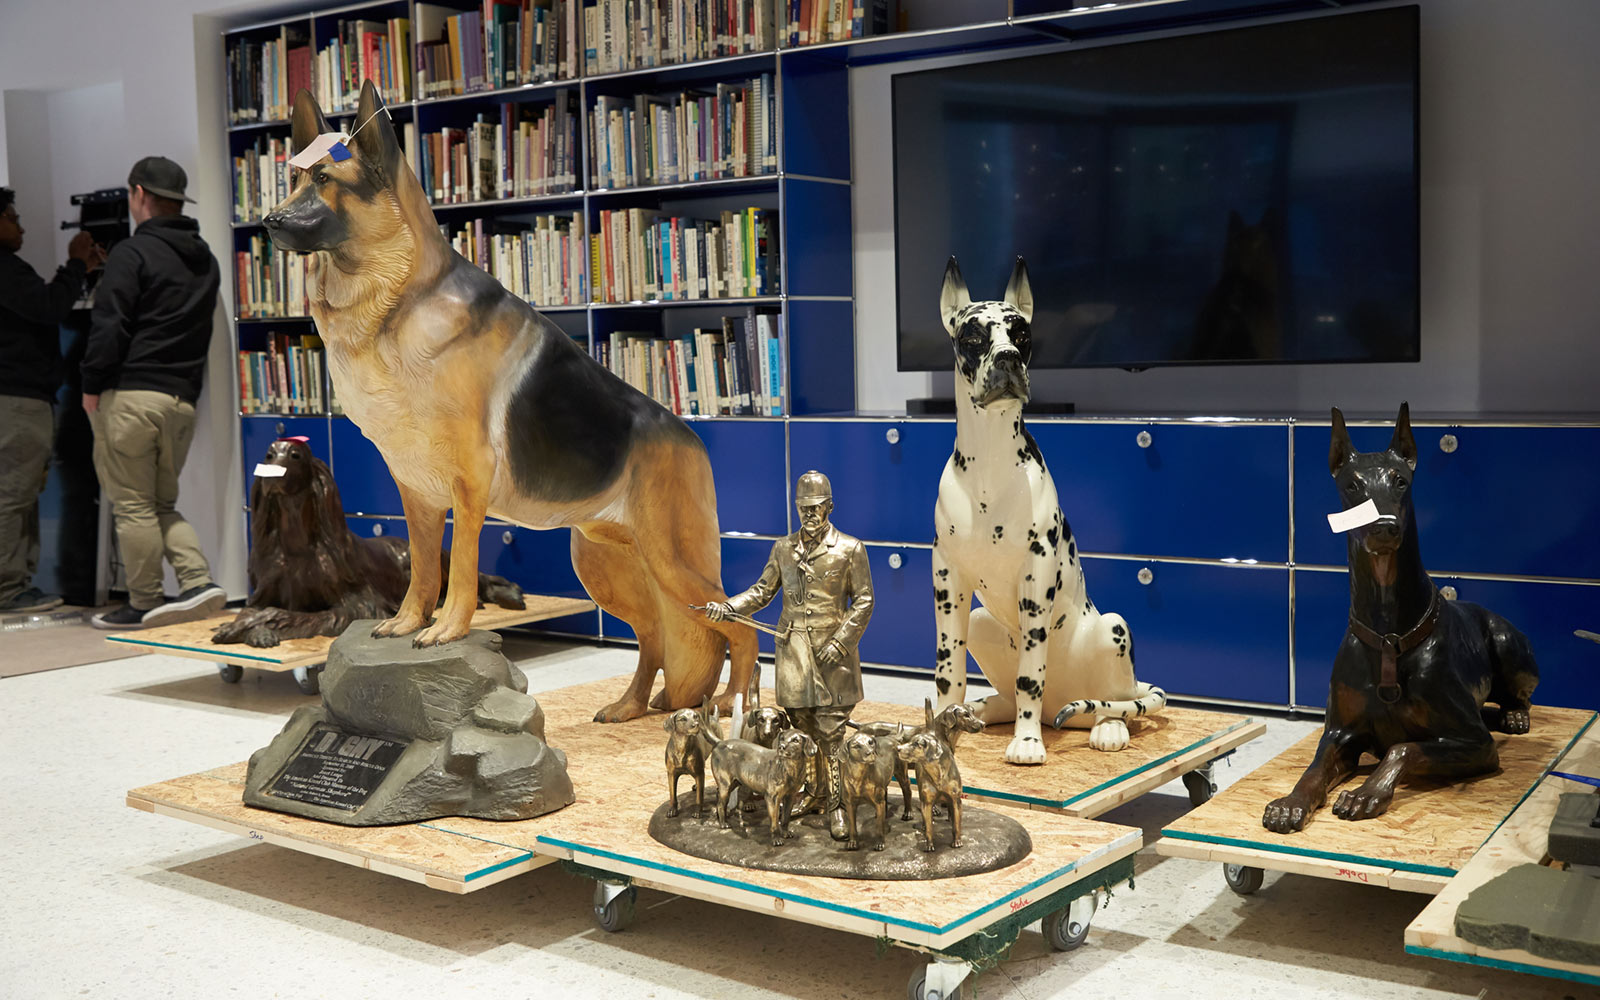 Figurines at the Museum of the Dog